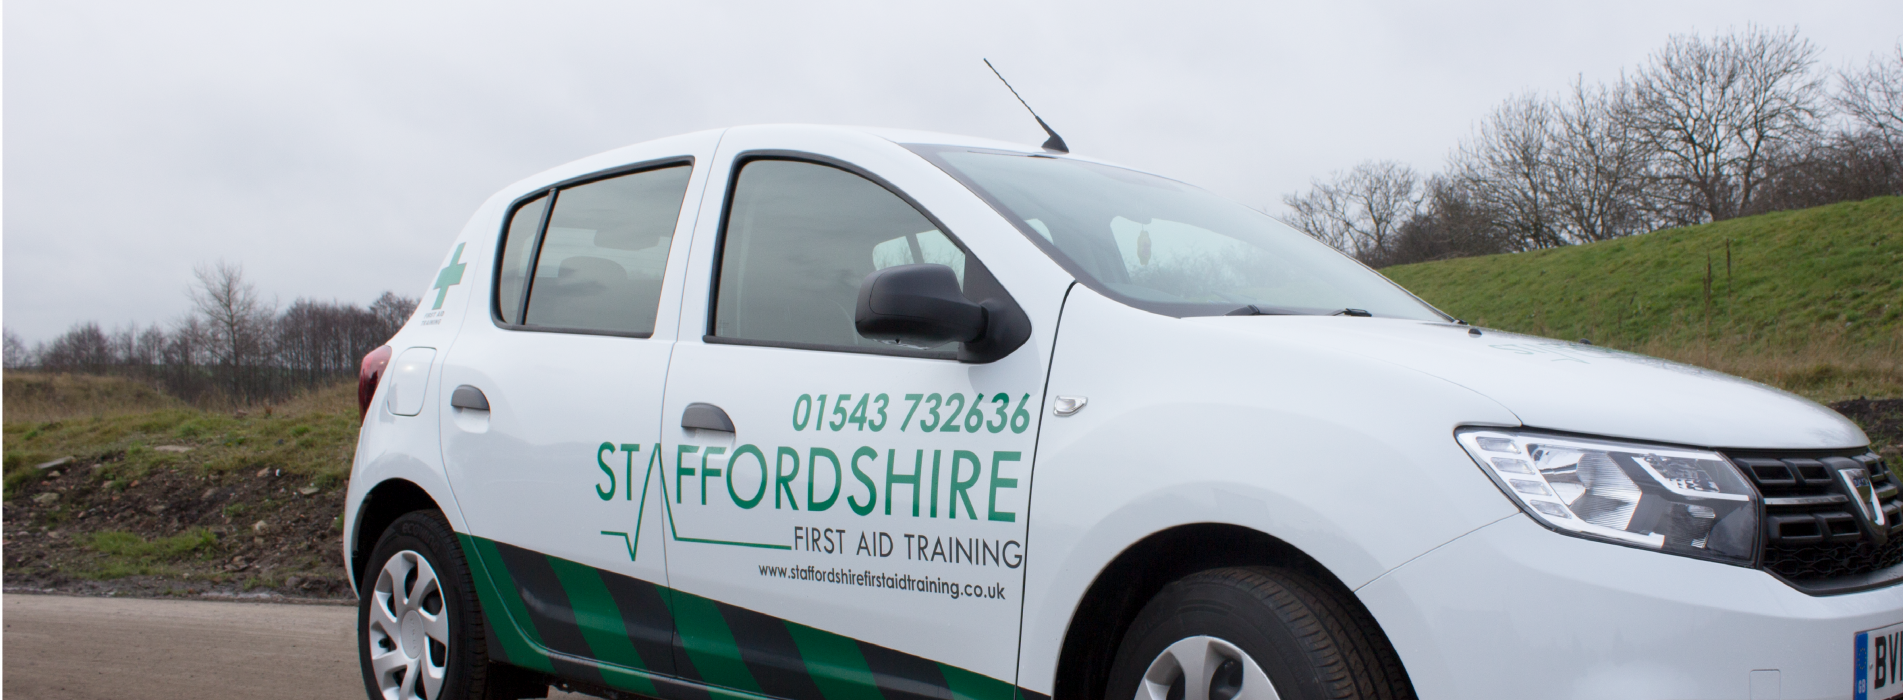 Peterborough first aid training